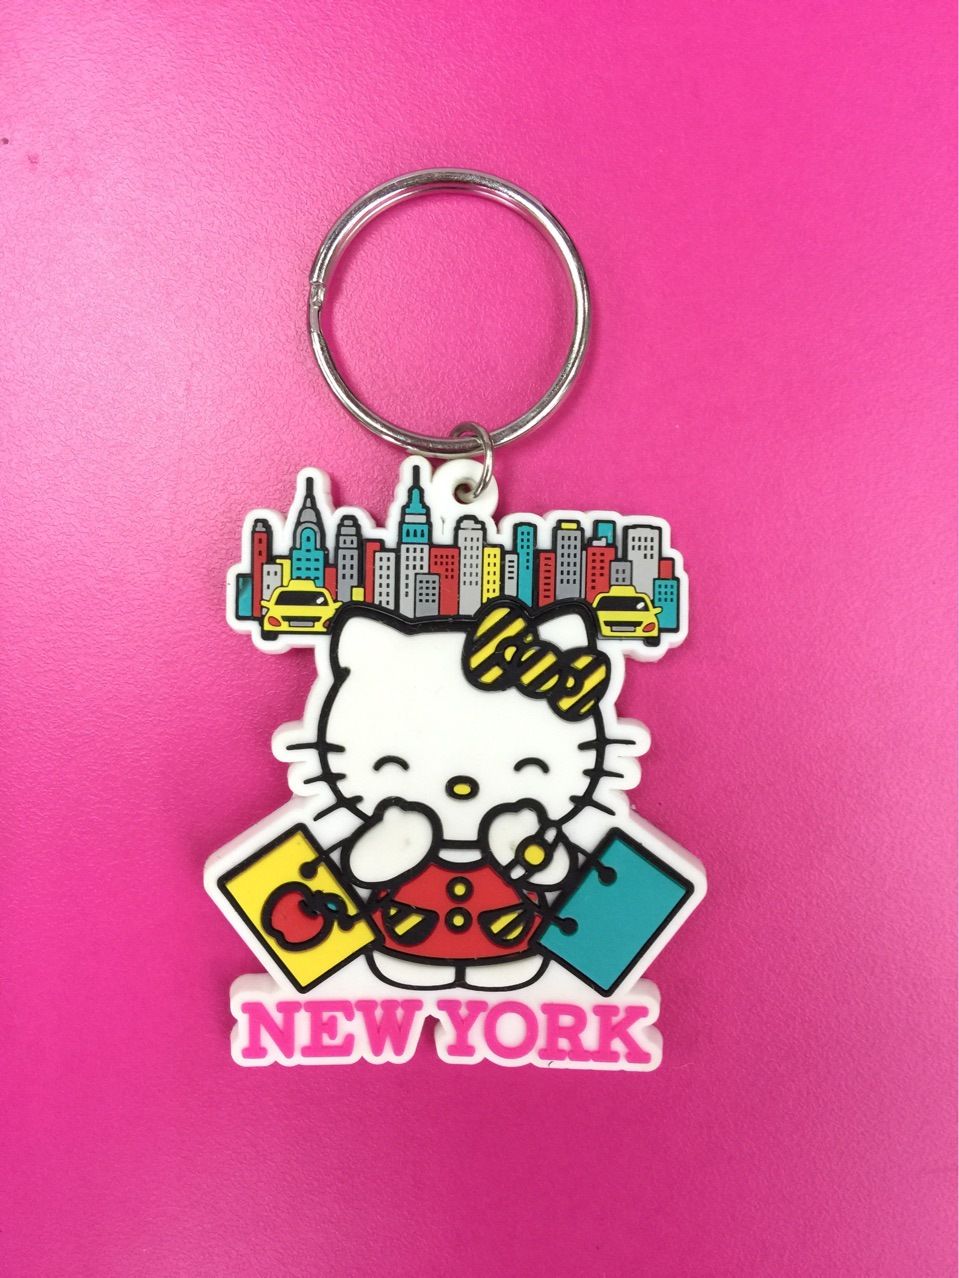 G604 Sanrio Hello Kitty Original Japanese anime figure rubber Silicone mobile phone charms keychain strap